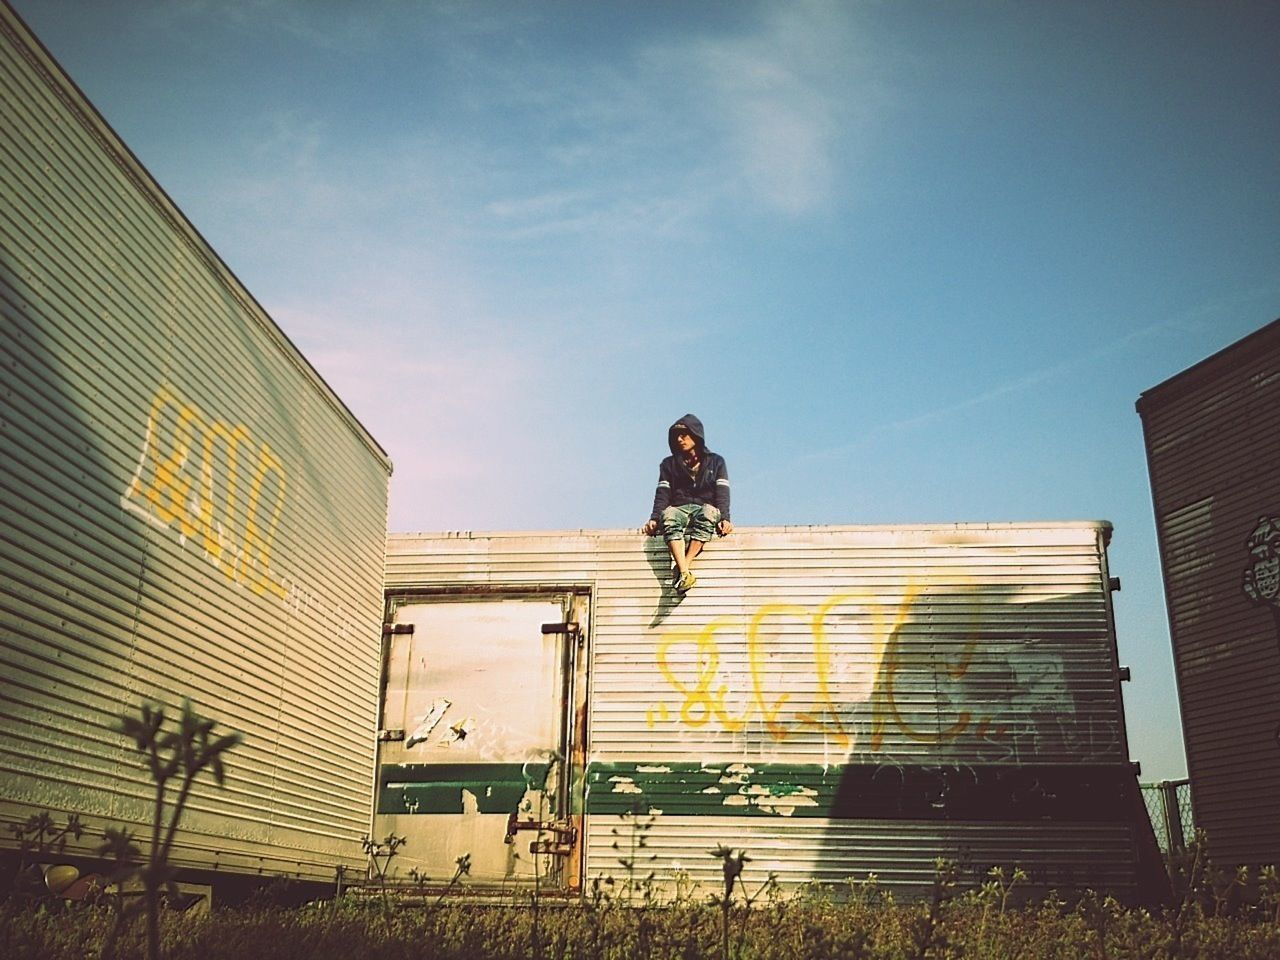 Low angle view of young woman sitting on wall against blue sky